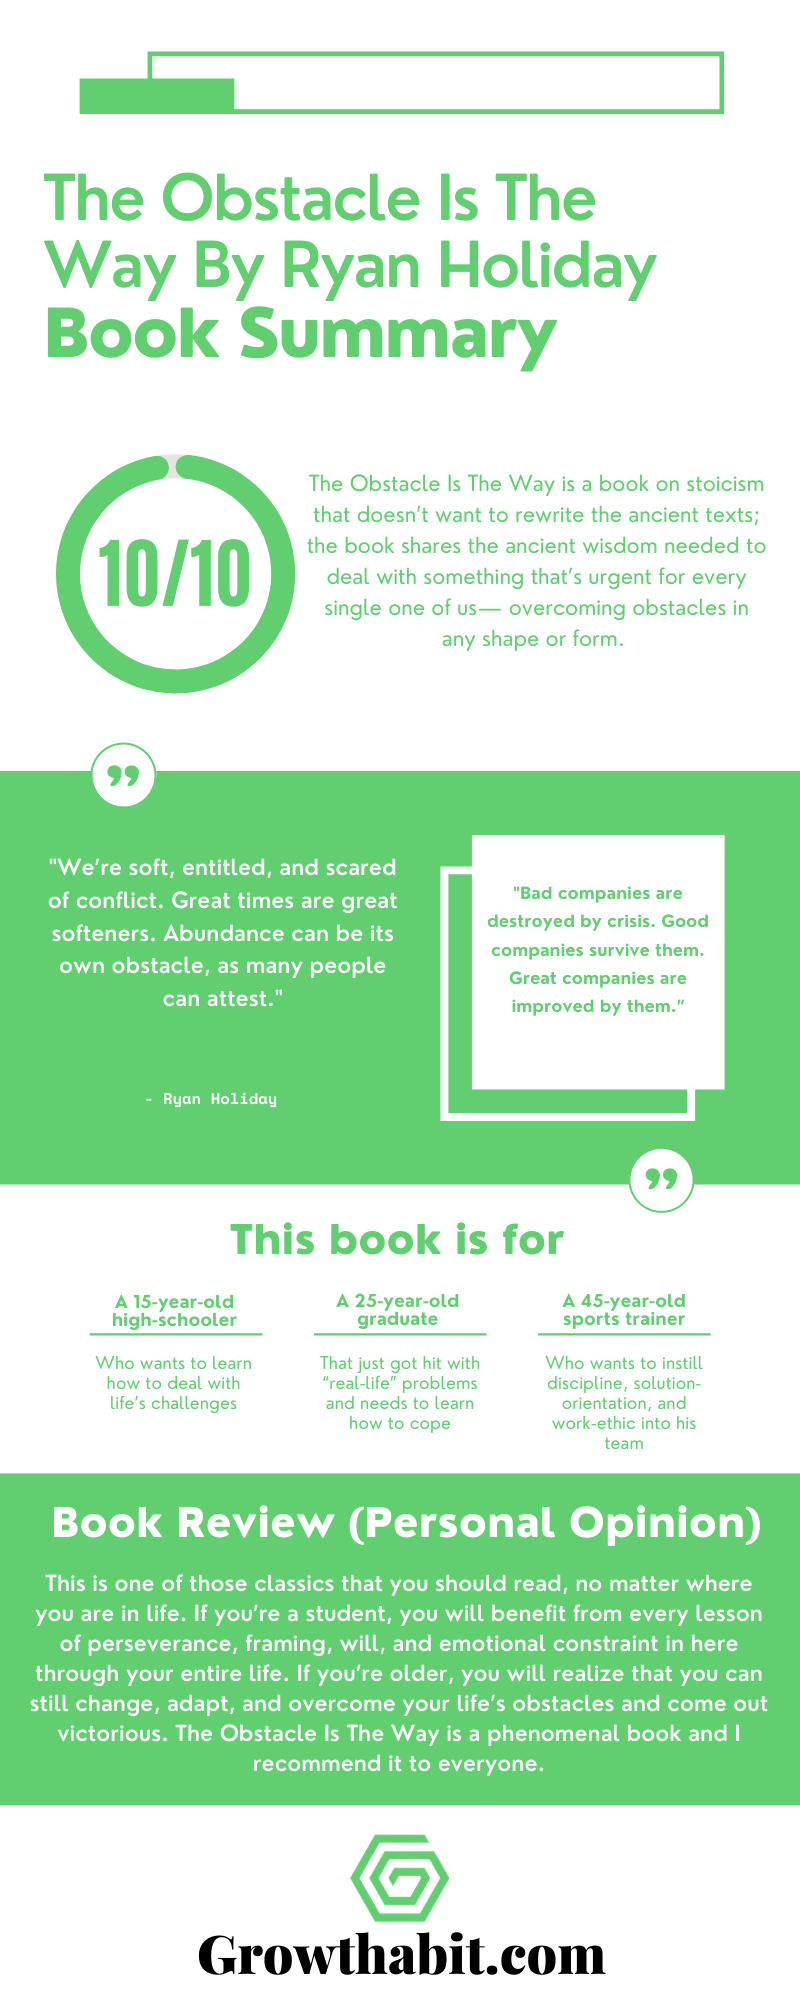 The Obstacle Is The Way by Ryan Holiday - Book Summary Infographic